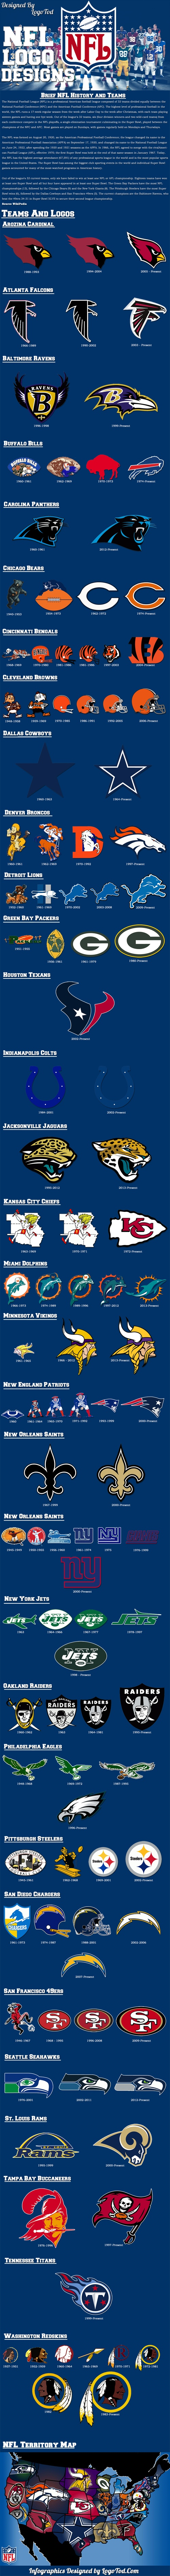 The History of NFL Logo Designs infogaphic